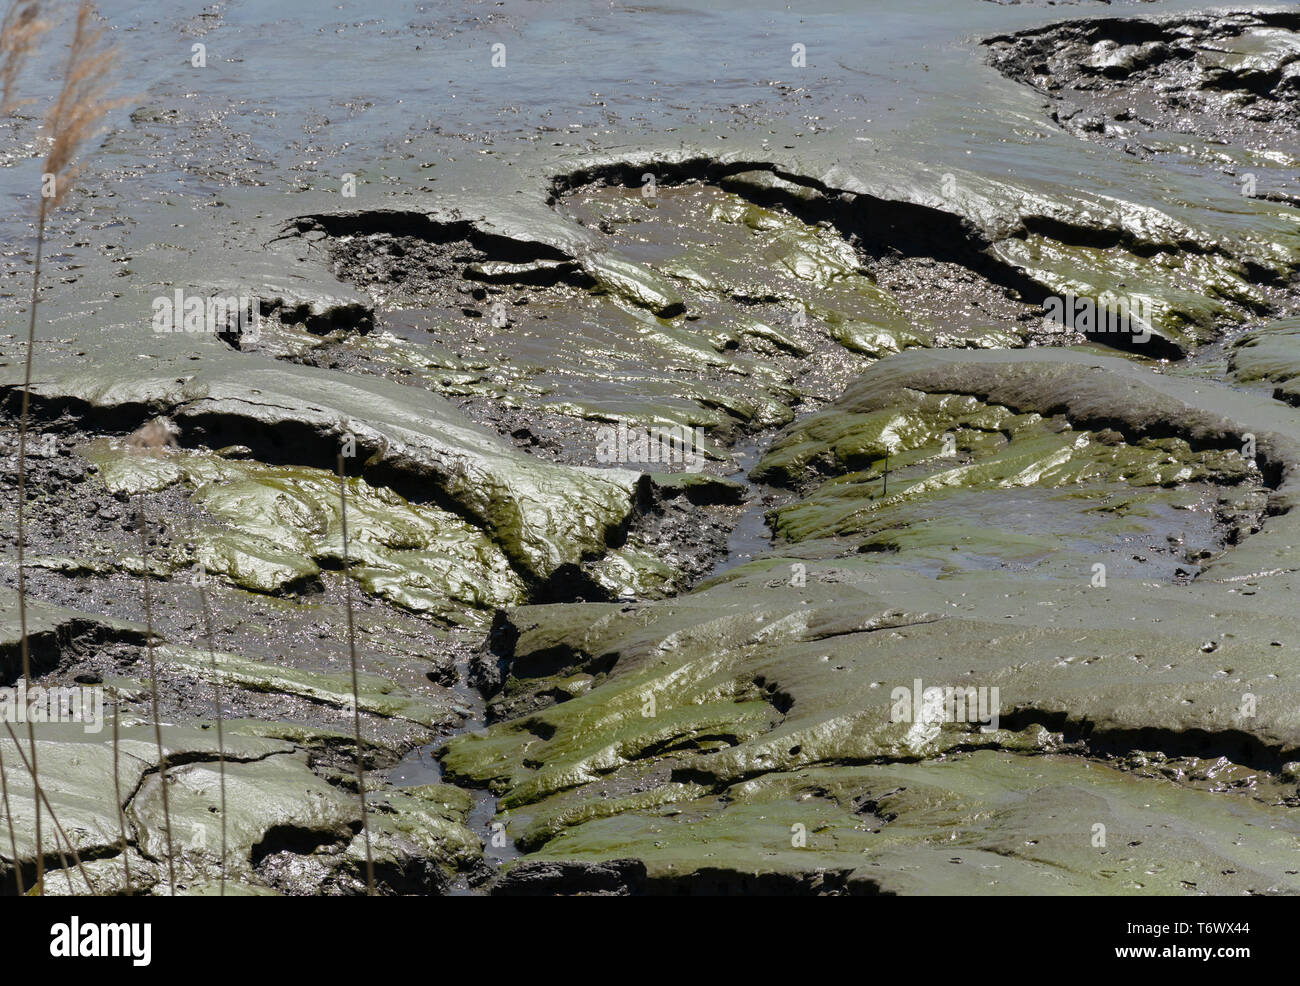 muddy surface of rocks, green algae mud and water caused by the retreating water gives a nice texture - Stock Image